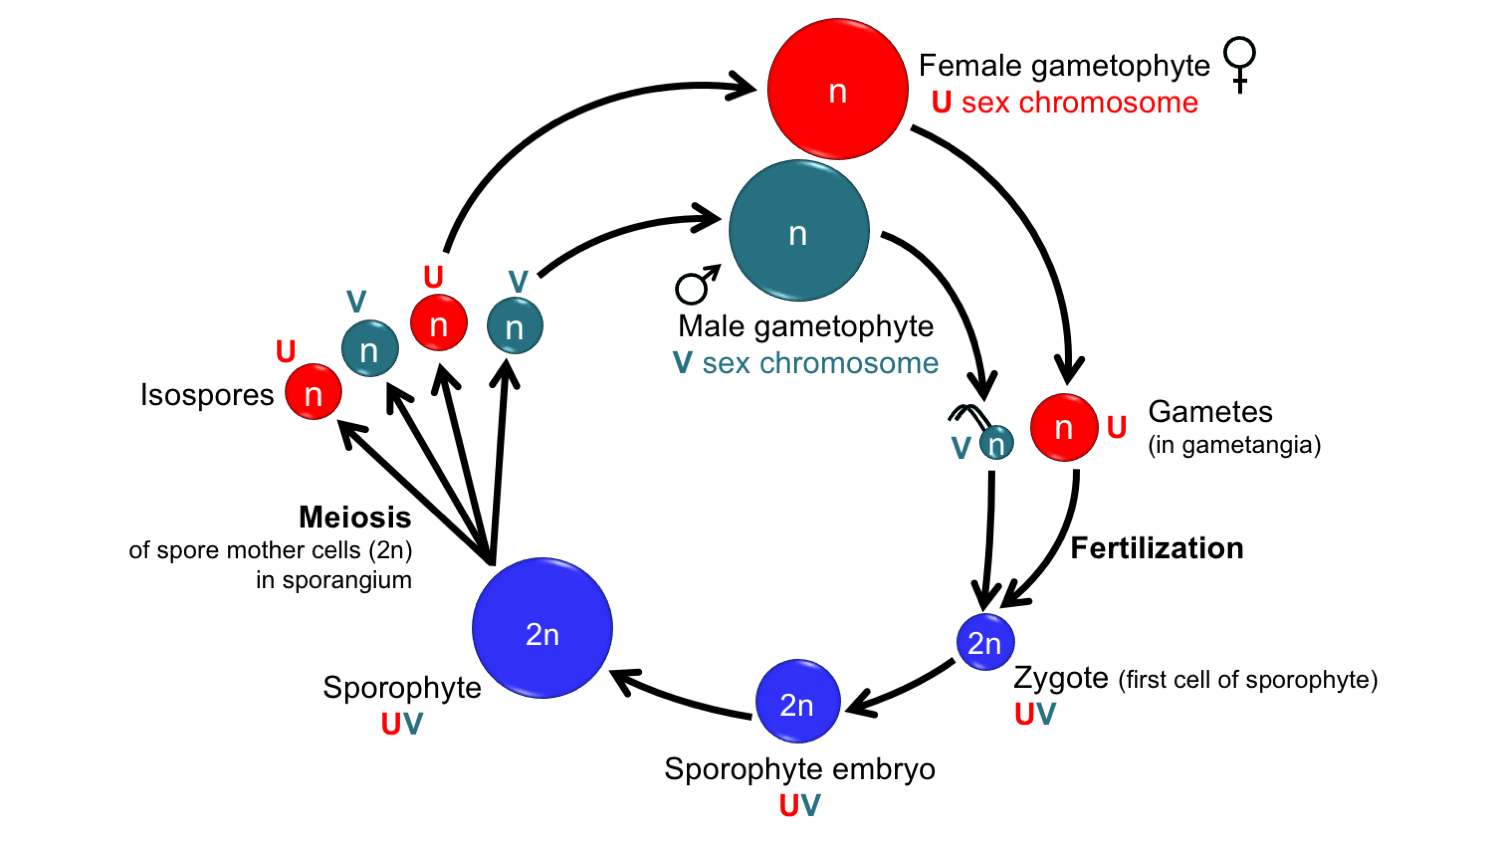 diagram showing the life cycle of a land plant with unisexual gametophytes  and sex chromosomes